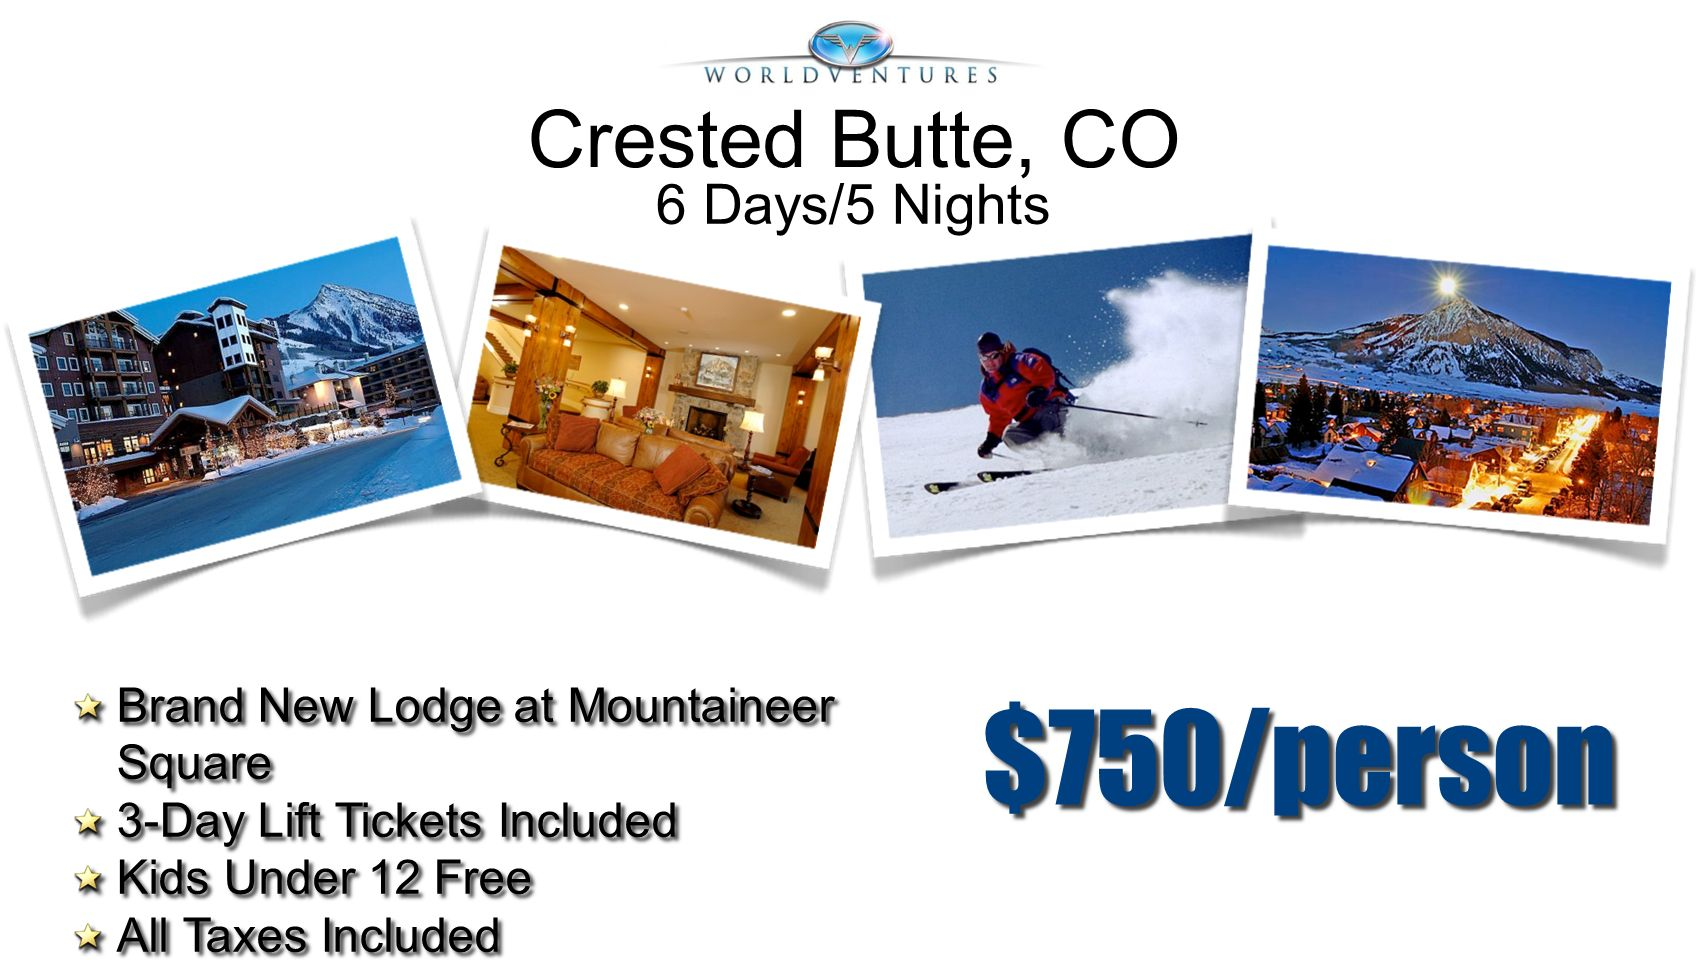 $750/person Crested Butte, CO 6 Days/5 Nights